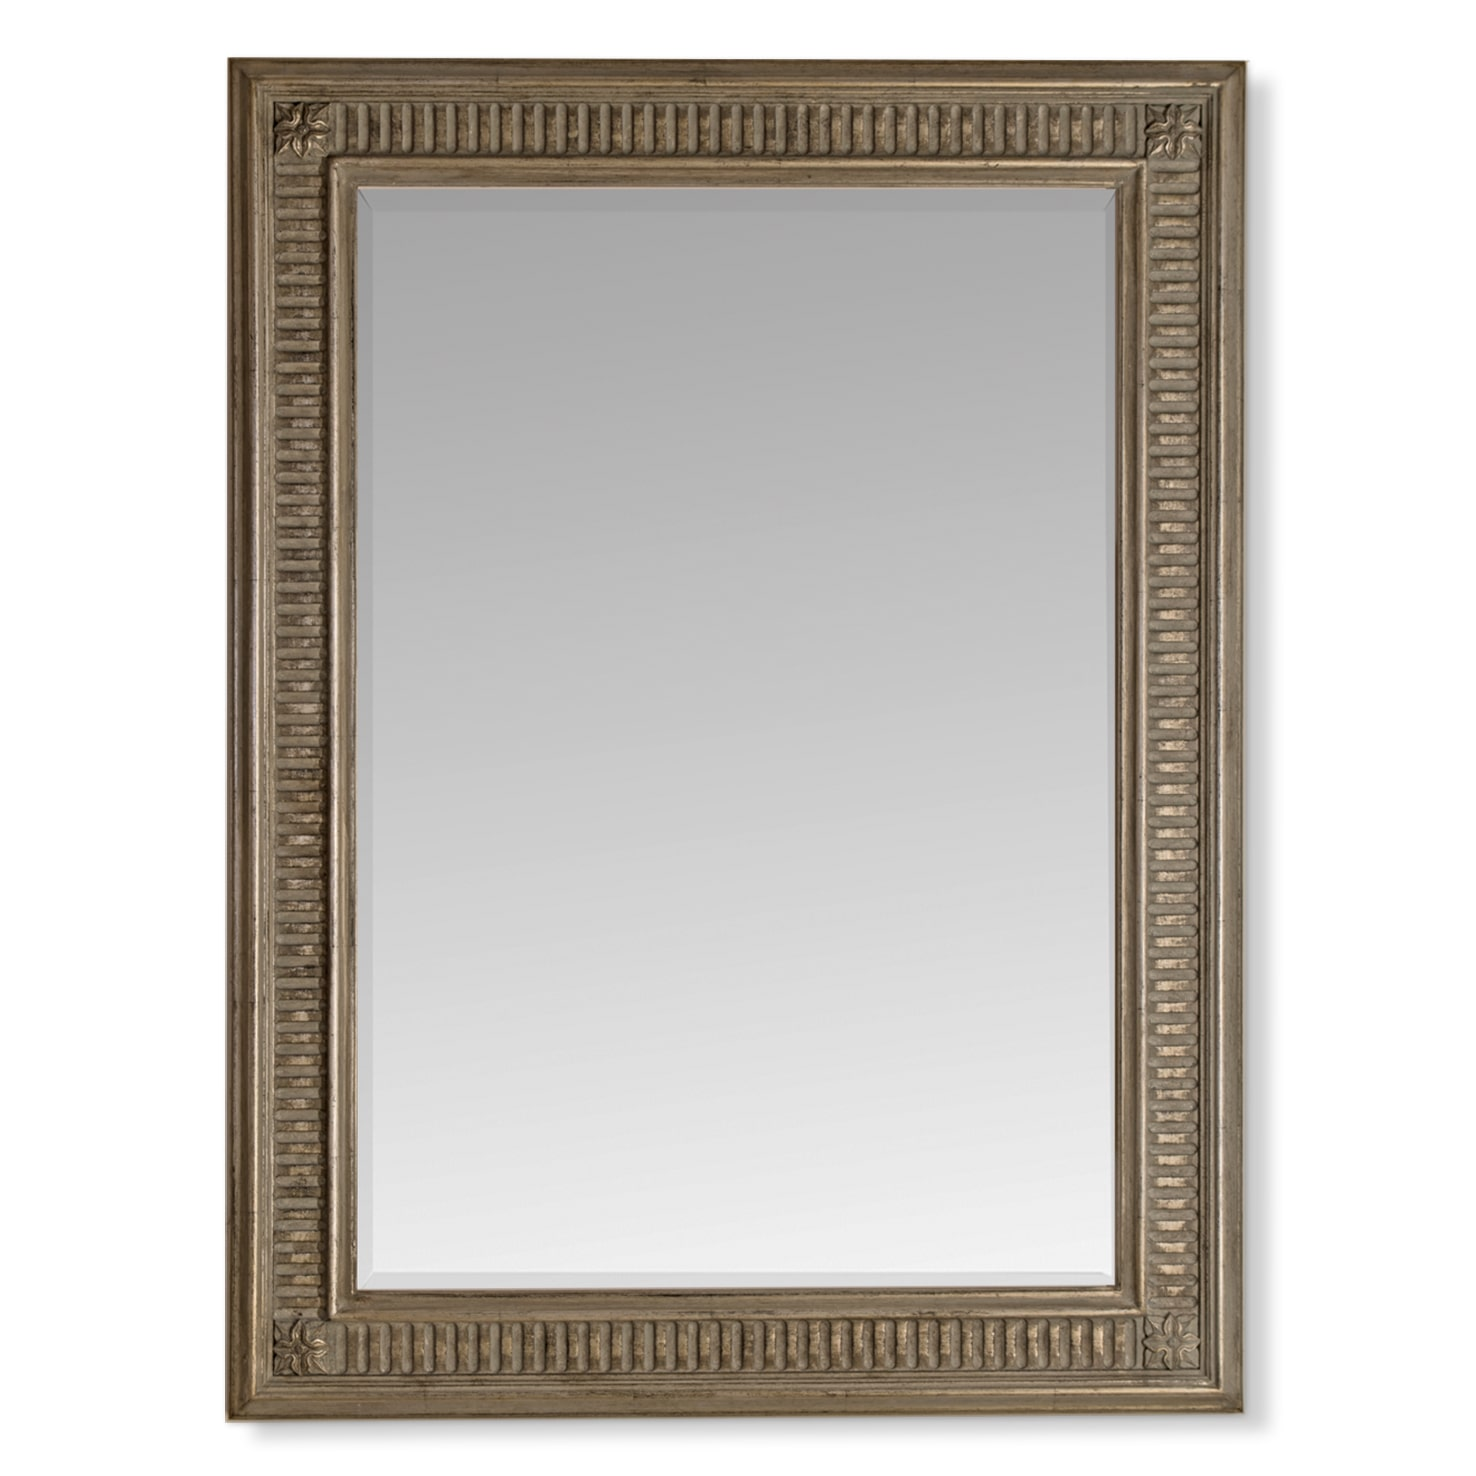 Catsfield in Antique Gold - Traditional Mirrors - Patrick Ireland Mirrors